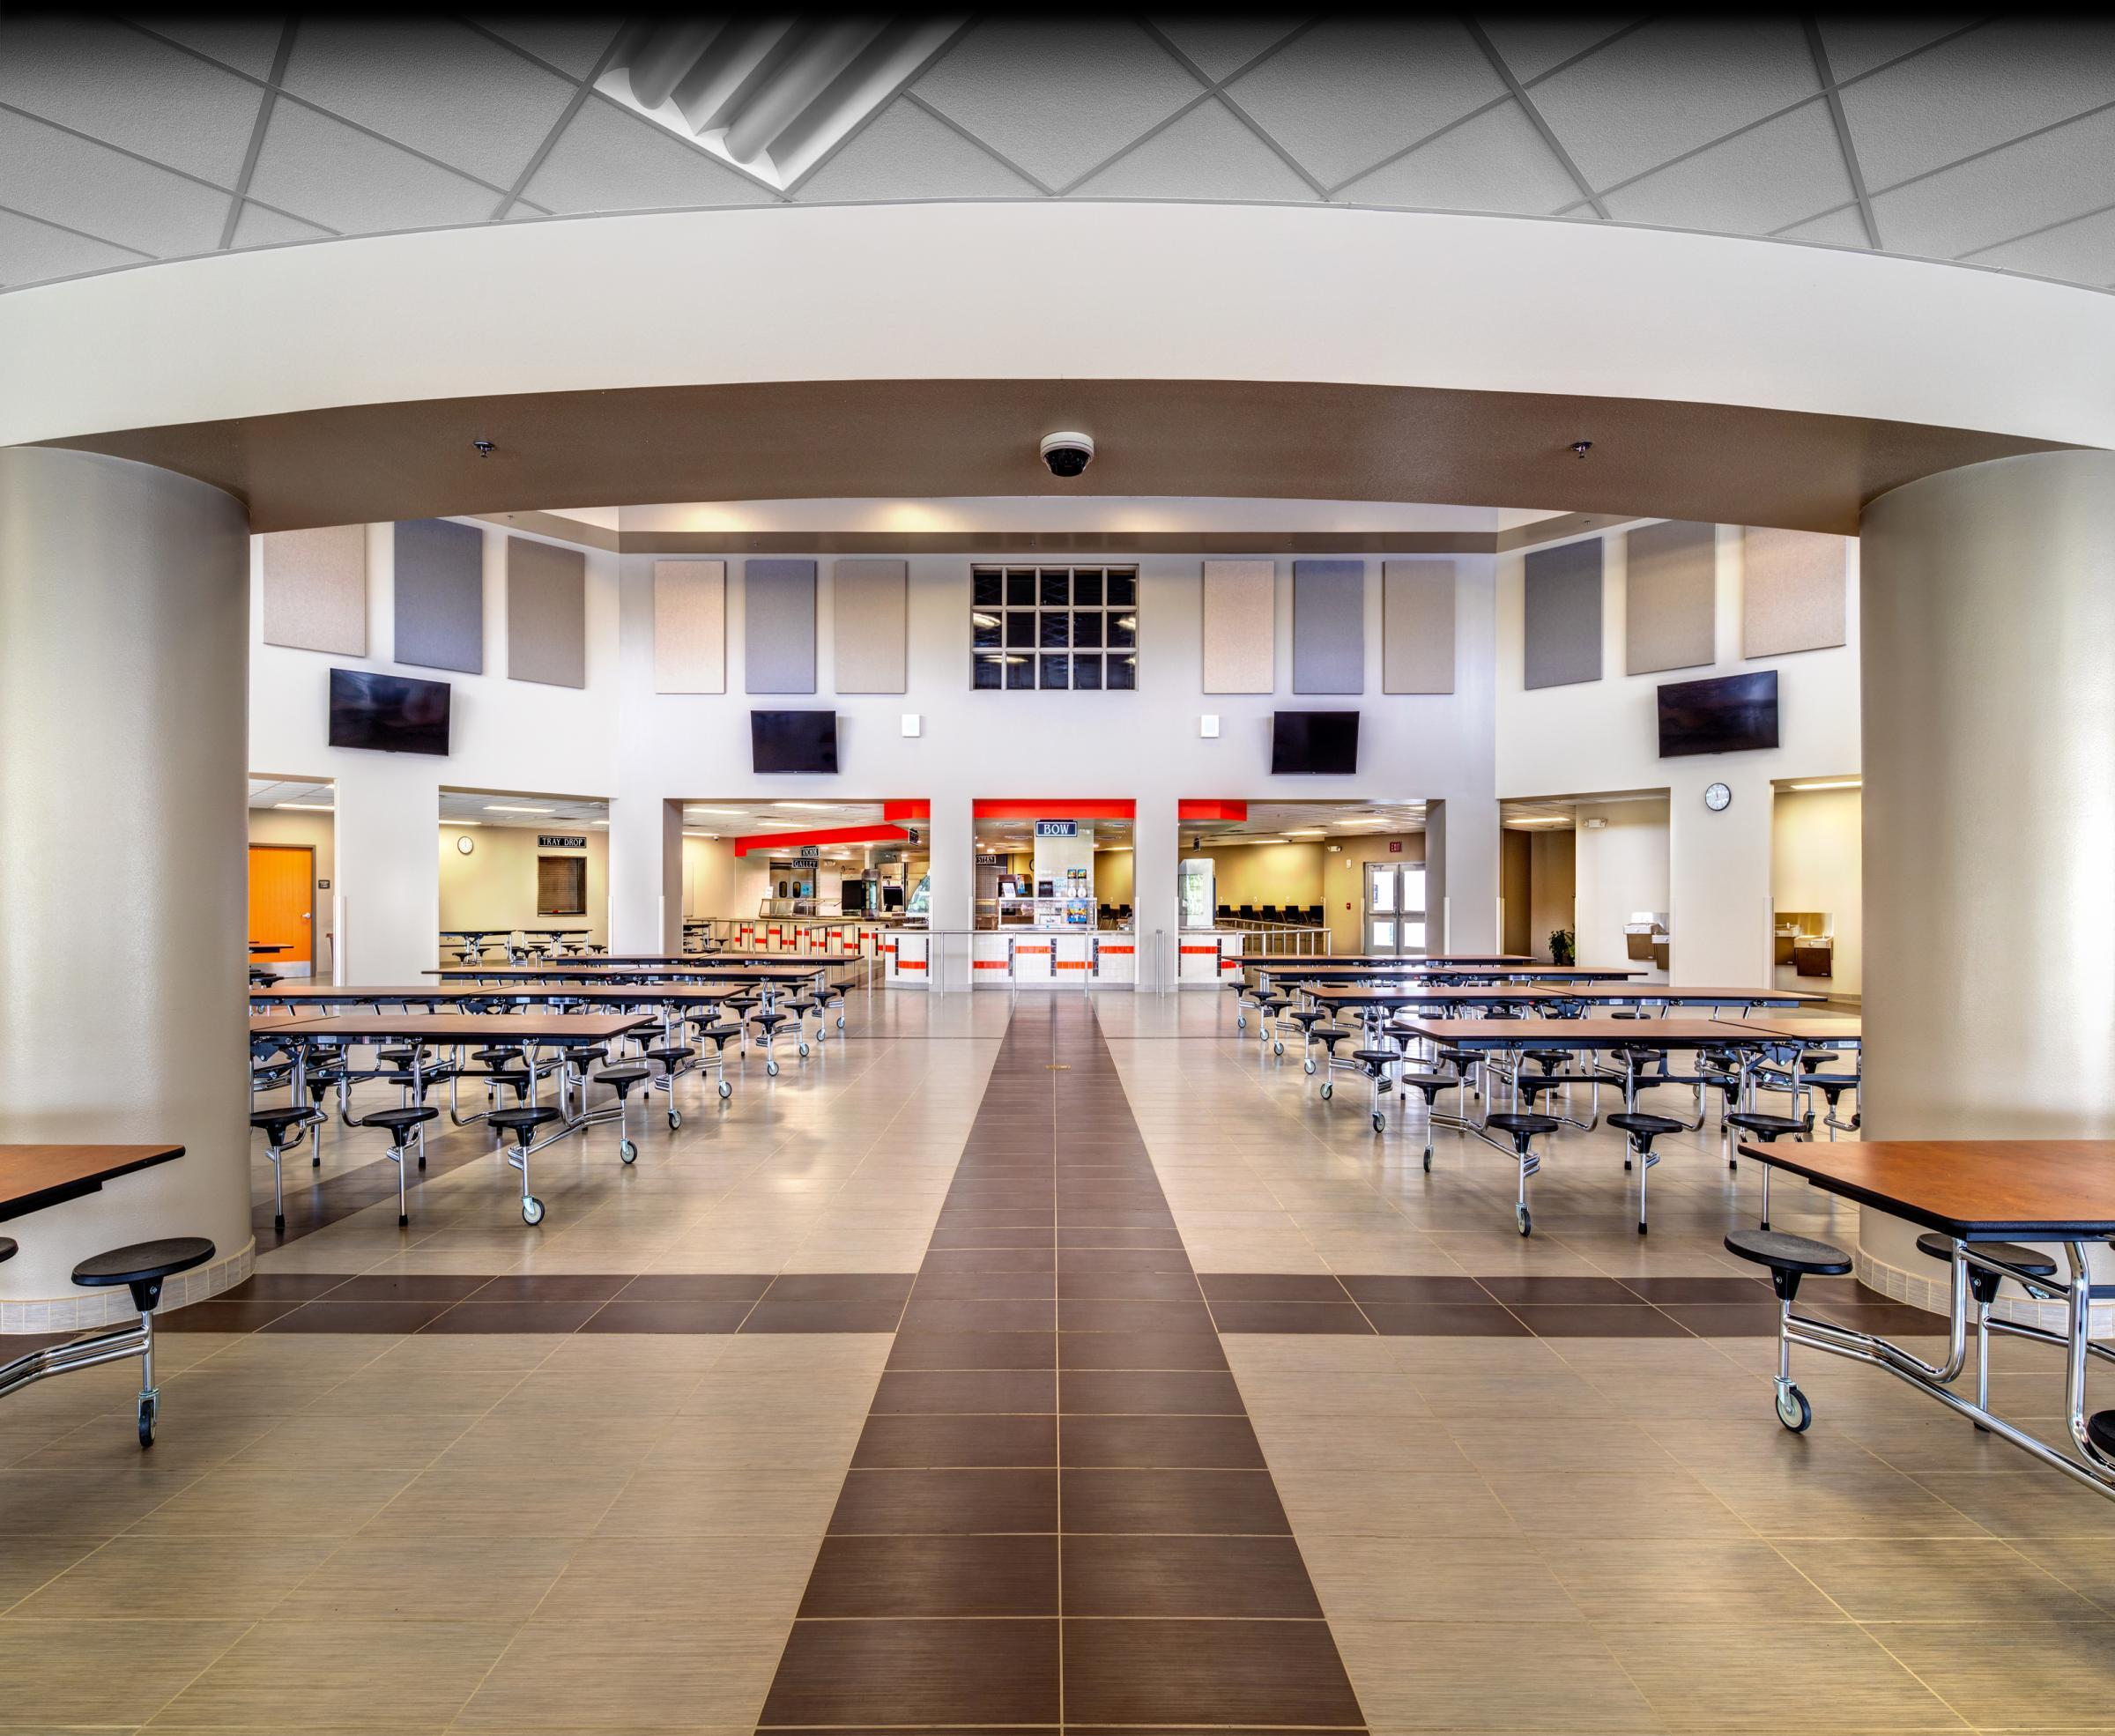 sarasota high school west campus renovation and expansion